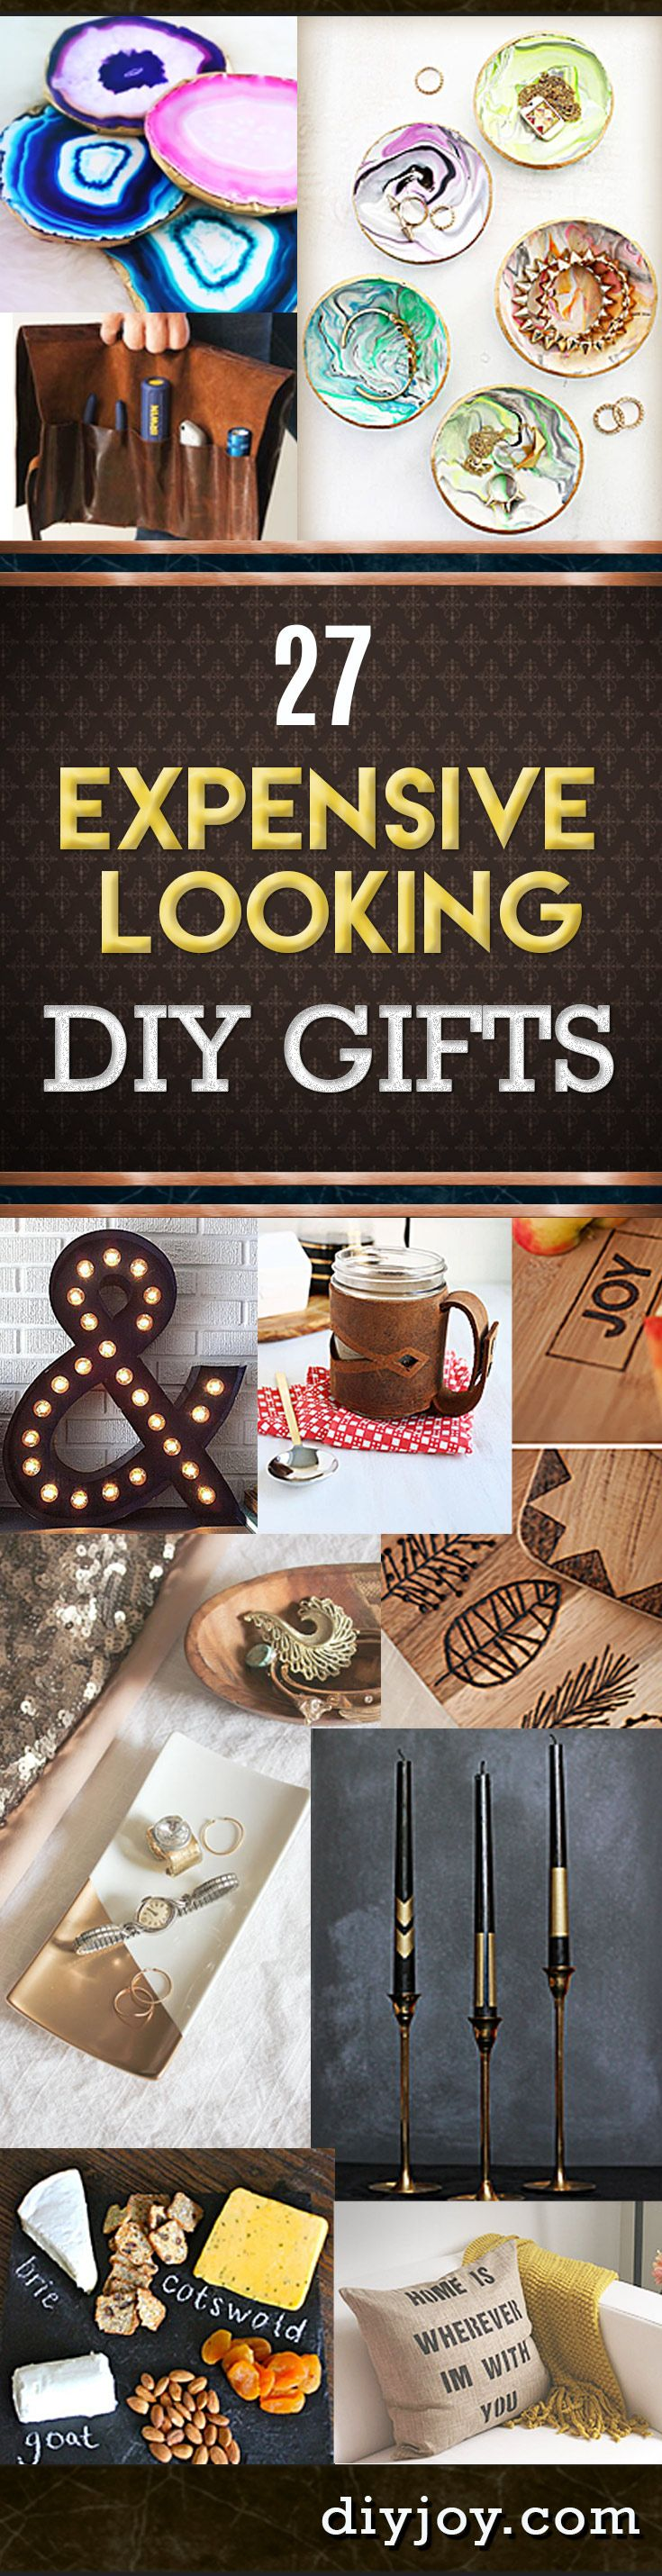 Best 25+ DIY gifts ideas on Pinterest | Diy christmas gifts ...